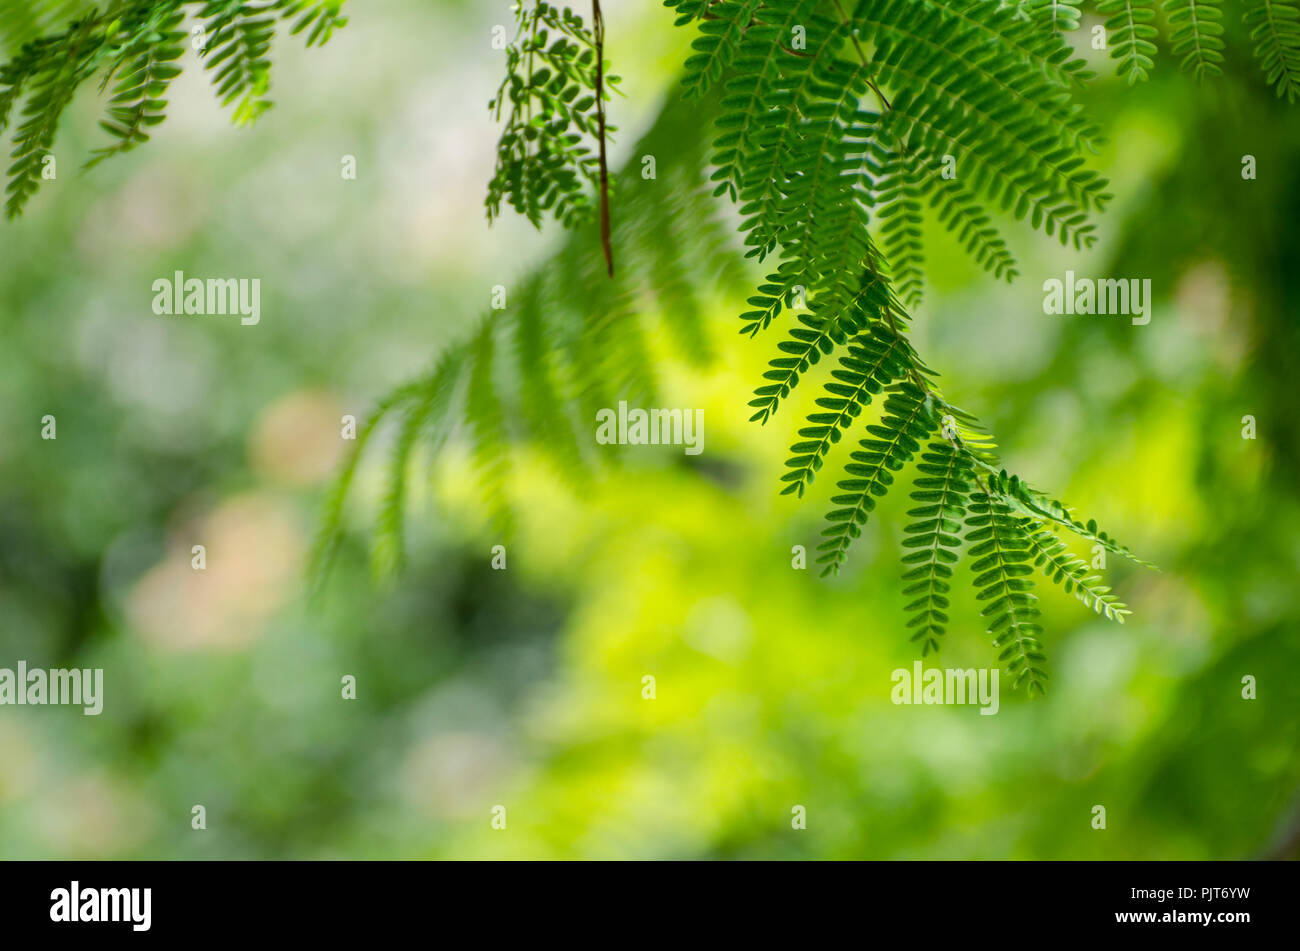 Royal Poinciana or Delonix Regia green leaves. It also known as Flame tree. - Stock Image